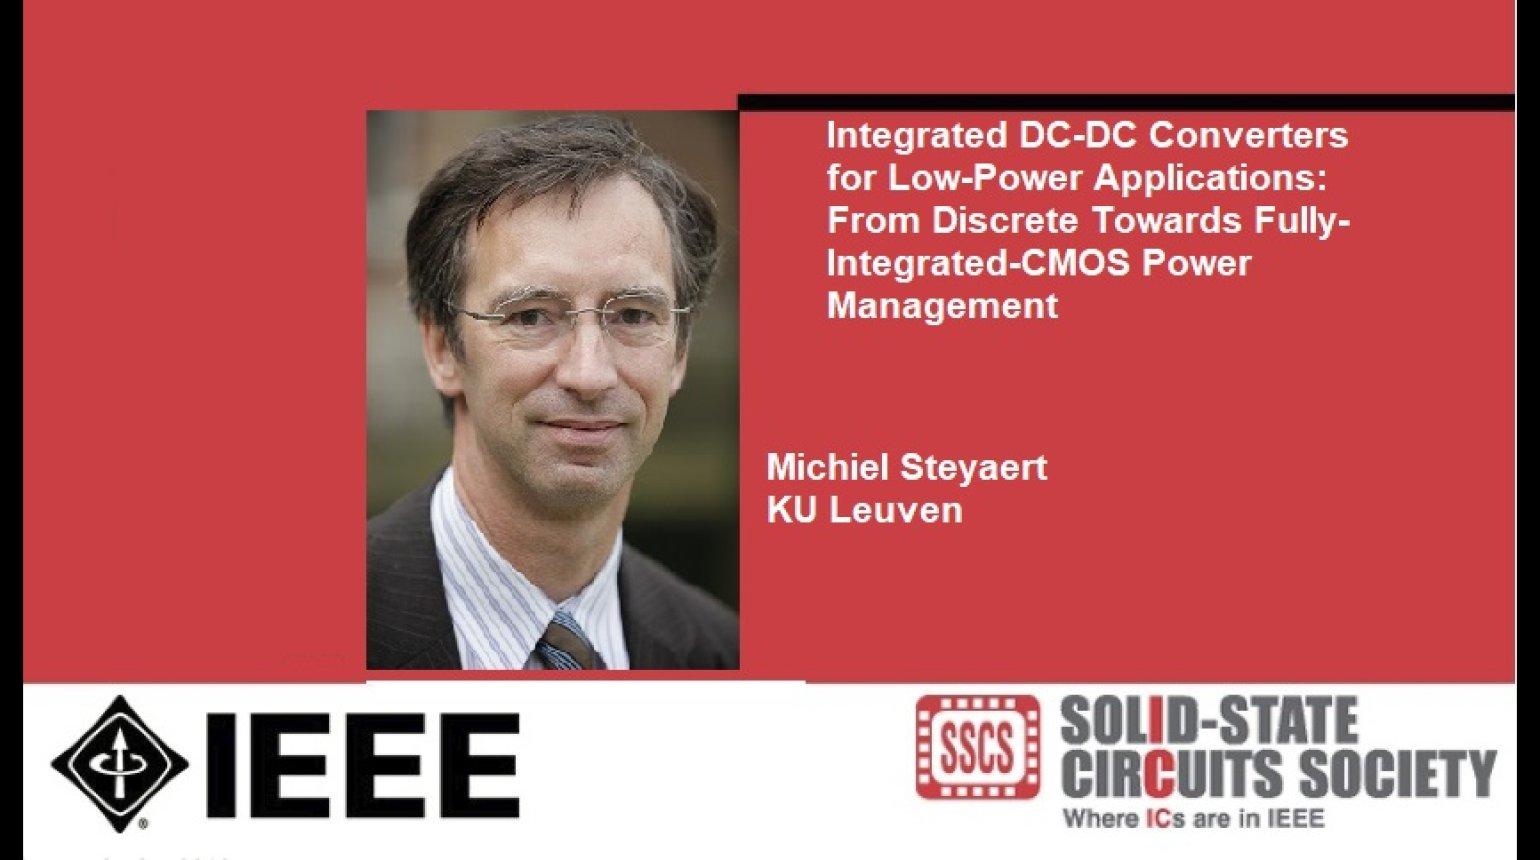 Integrated DC-DC Converters for Low-Power Applications: From Discrete Towards Fully-Integrated-CMOS Power Management Video